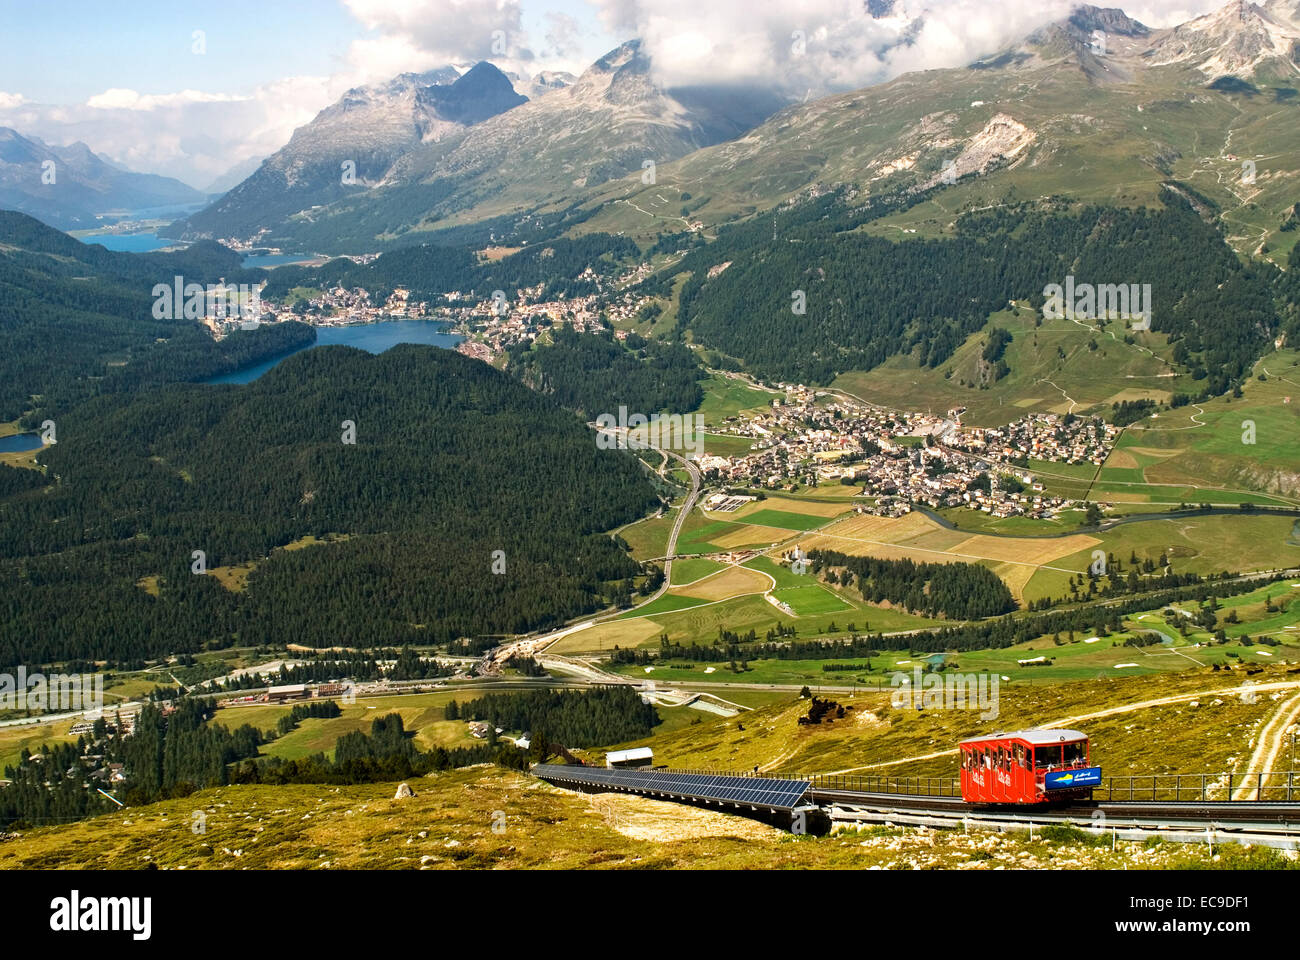 Cable car going up Muottas Muragl with the Upper Engadin Lakes in the background, Engadin, Switzerland Standseilbahn Stock Photo